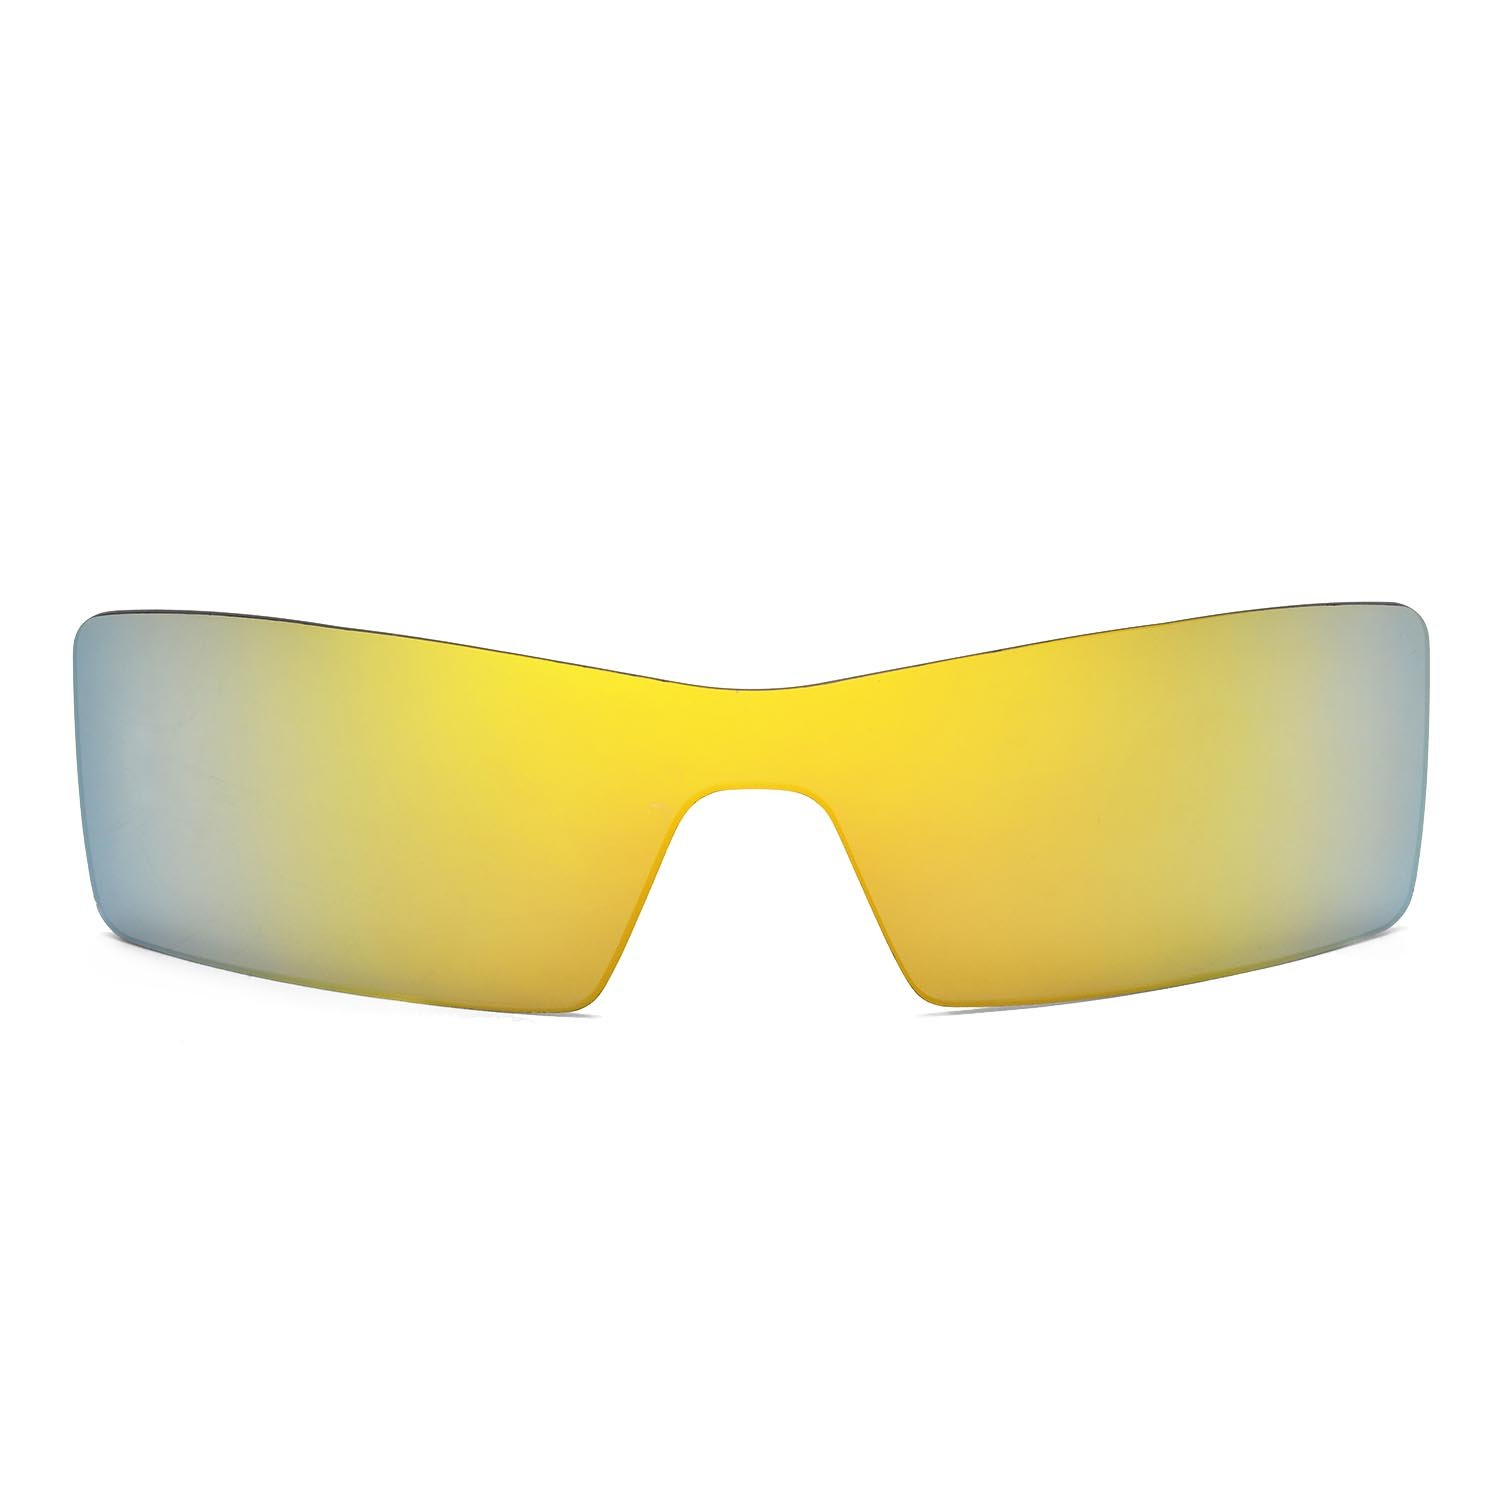 dfc79dcaf1756 Amazon.com  Walleva Replacement Lenses for Oakley Oil Rig Sunglasses -  Multiple Options (24K Gold - Polarized)  Shoes